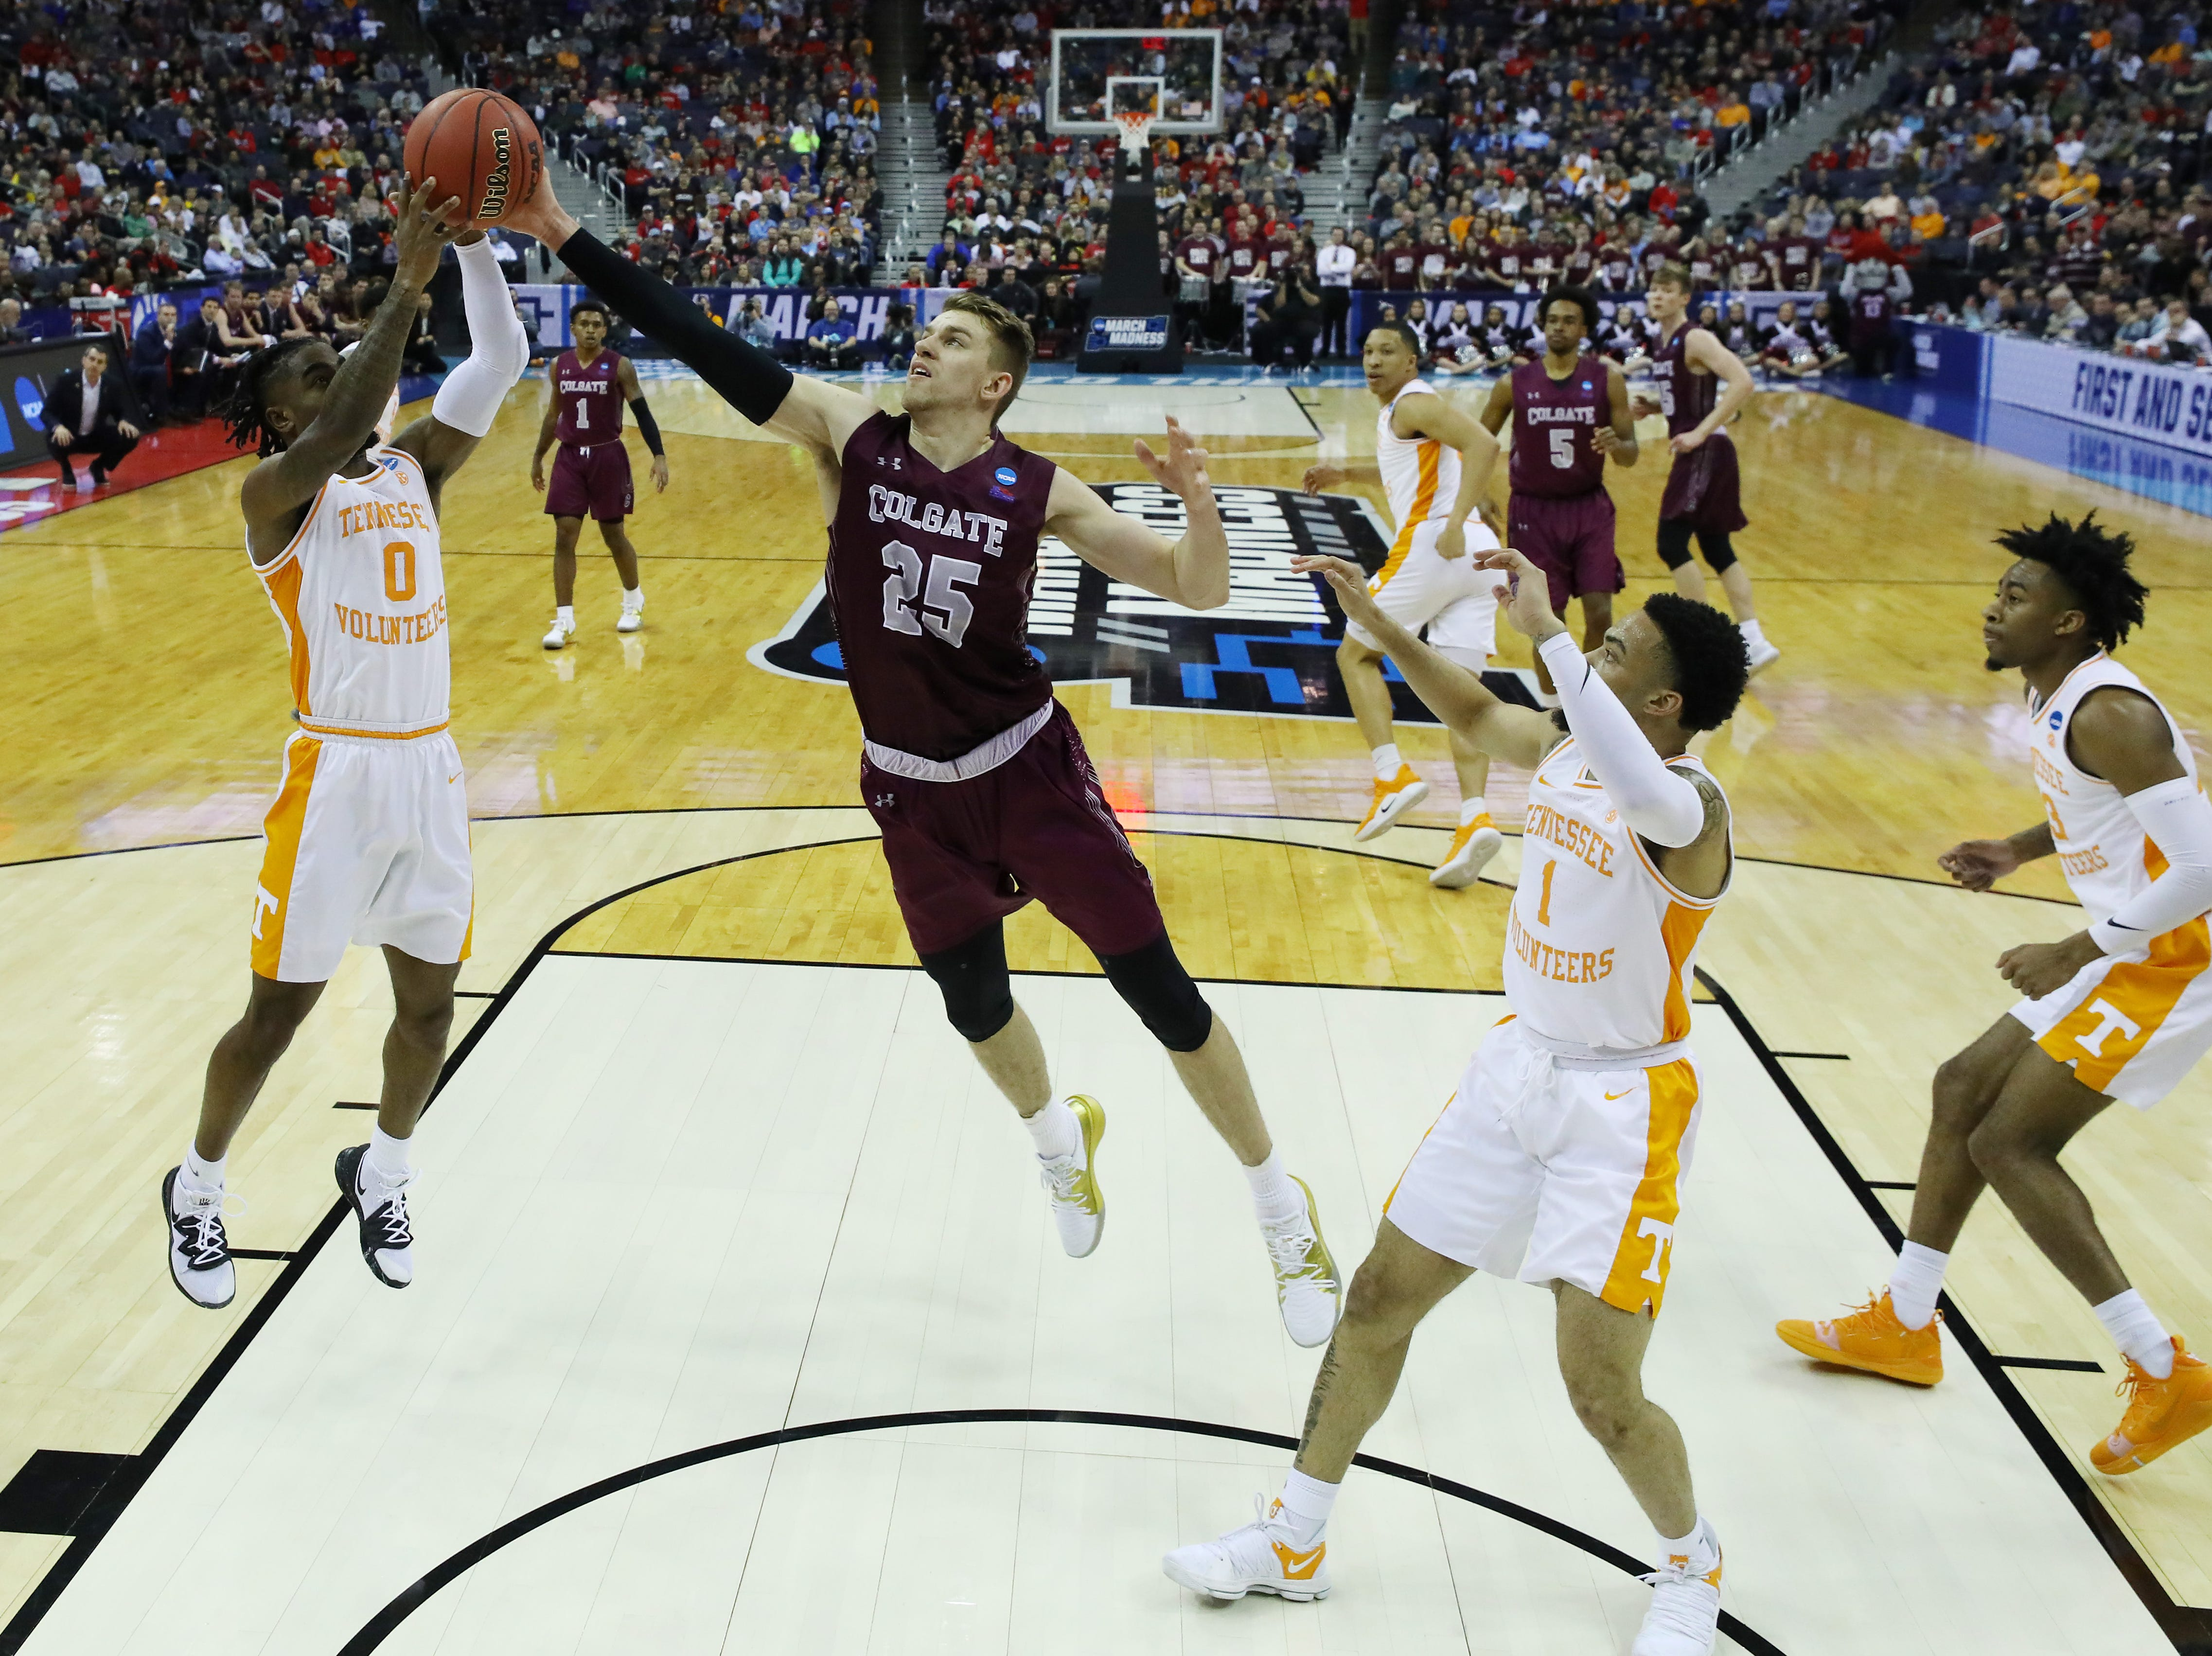 COLUMBUS, OHIO - MARCH 22: Jordan Bone #0 of the Tennessee Volunteers battles for the ball with Rapolas Ivanauskas #25 of the Colgate Raiders during the first half in the first round of the 2019 NCAA Men's Basketball Tournament at Nationwide Arena on March 22, 2019 in Columbus, Ohio. (Photo by Elsa/Getty Images)